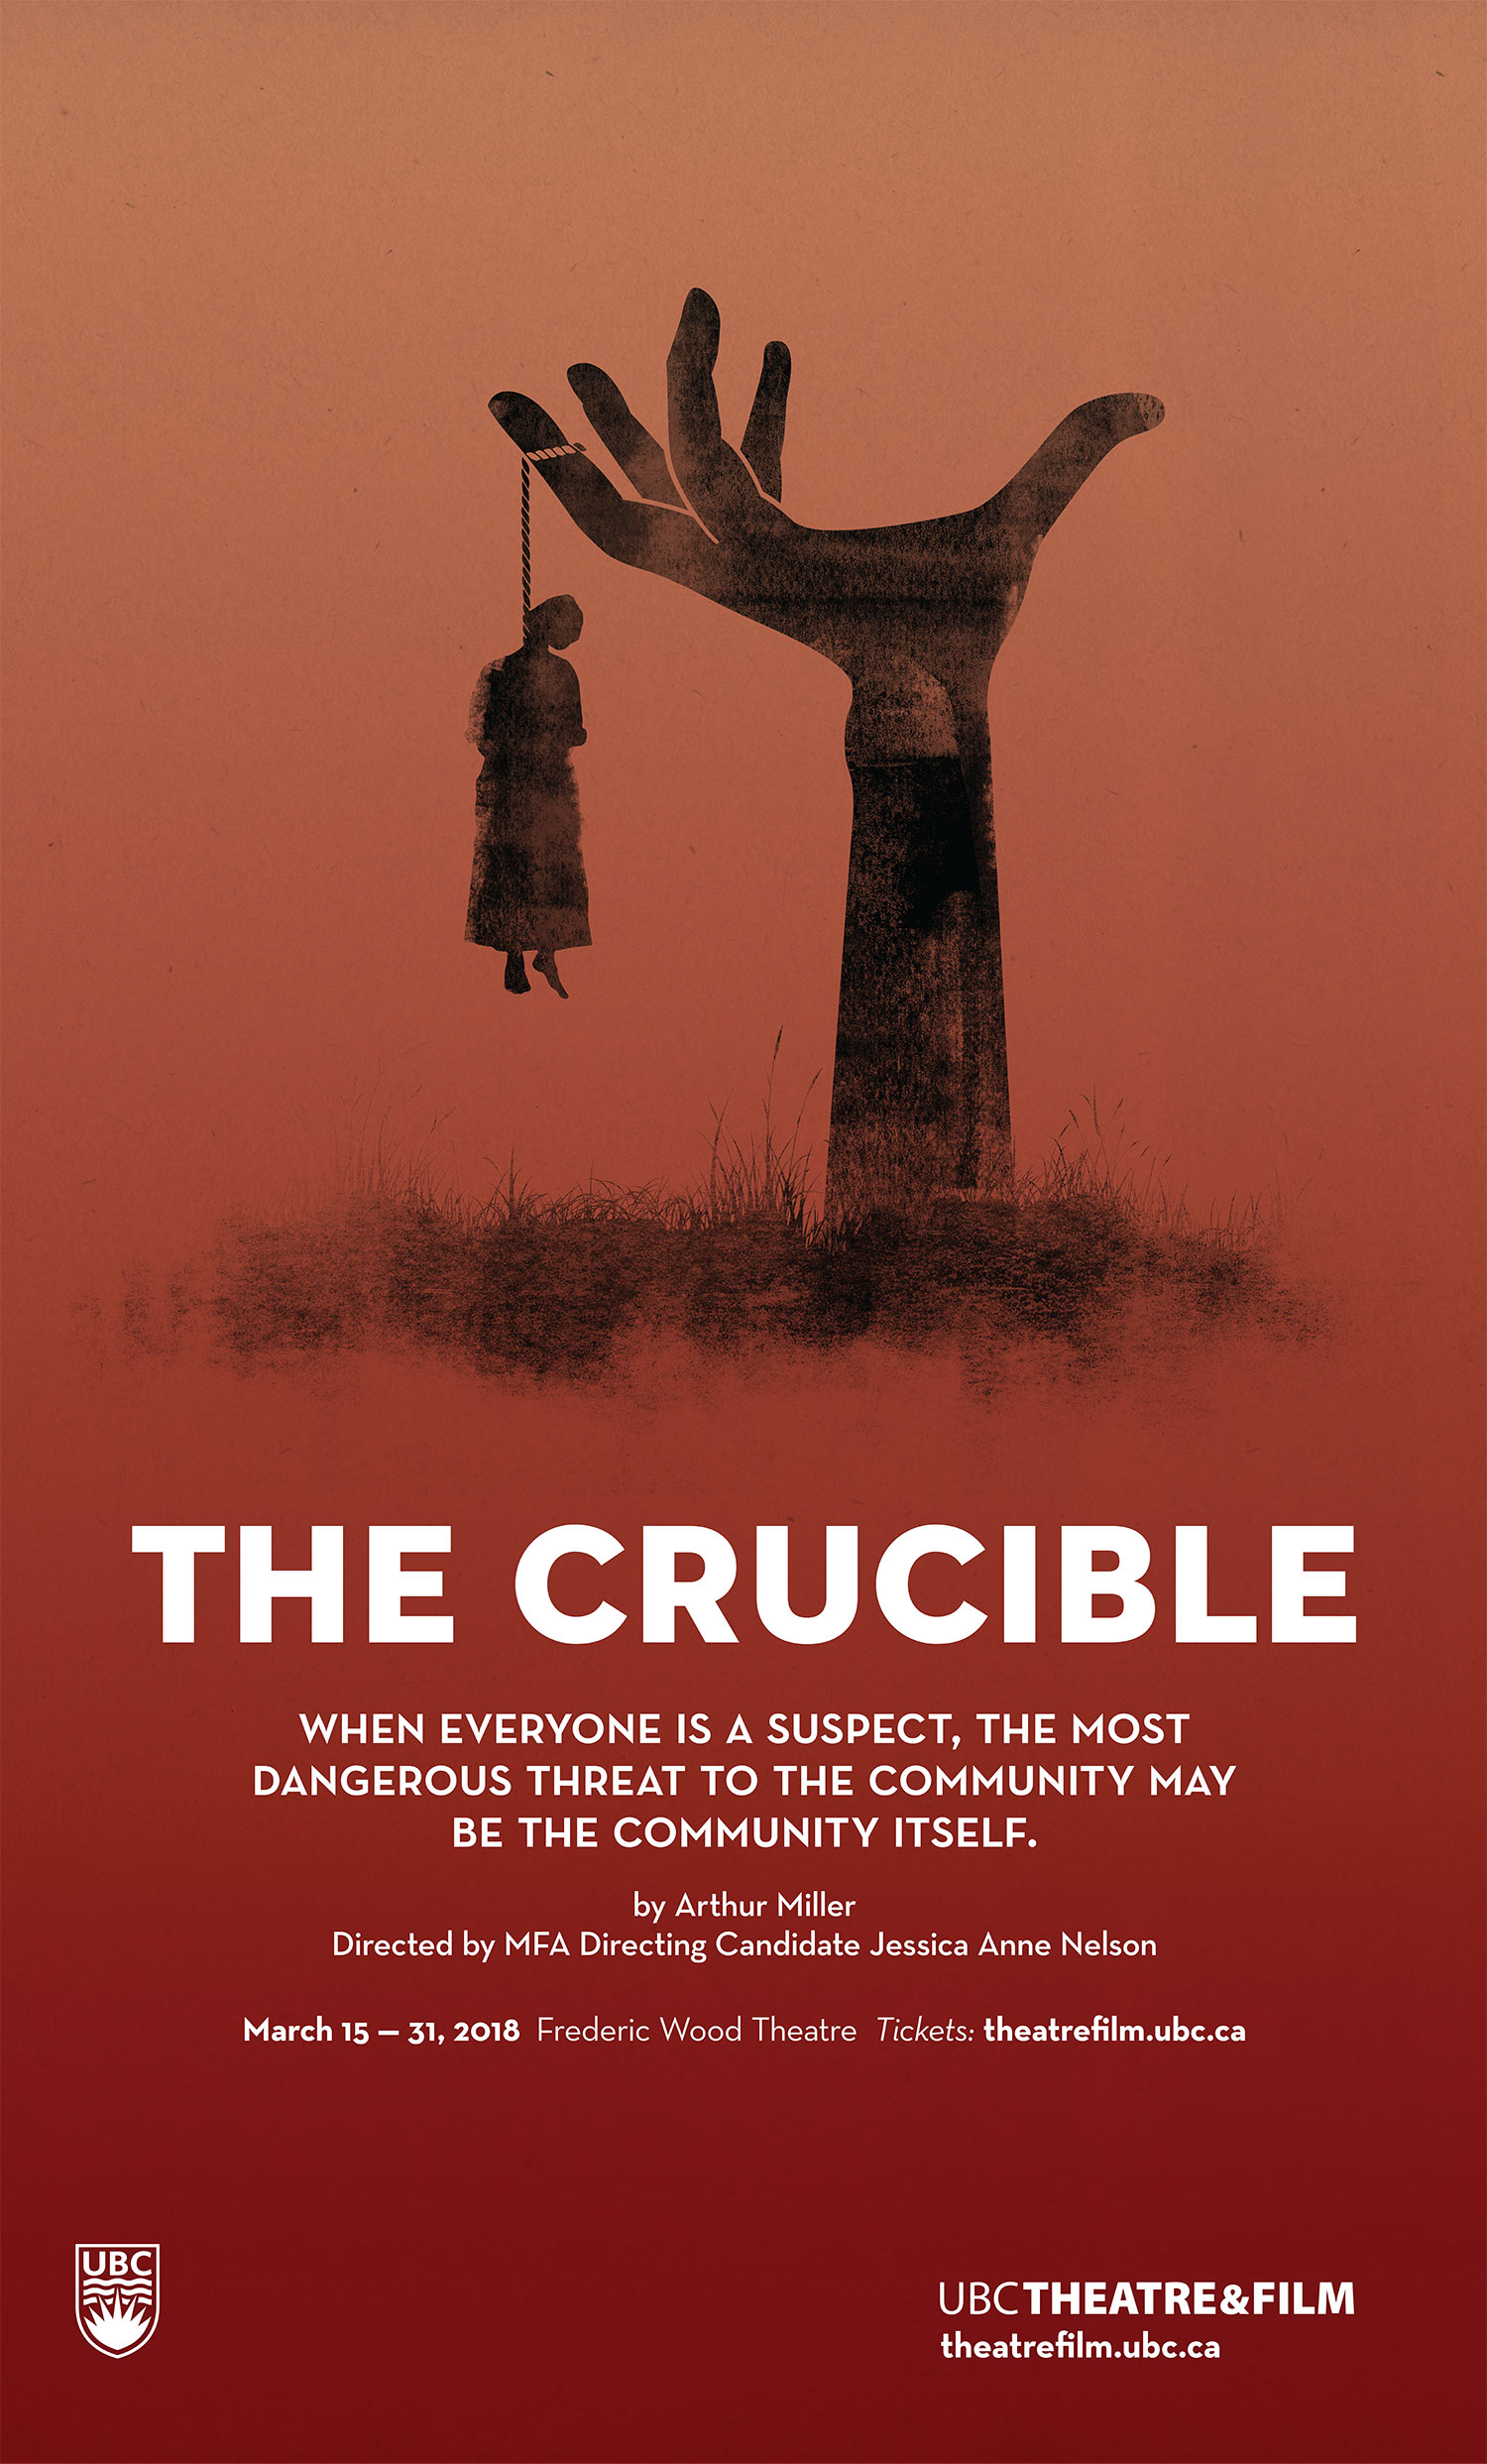 The Crucible By Arthur Miller Presented By The Department Of Theatre